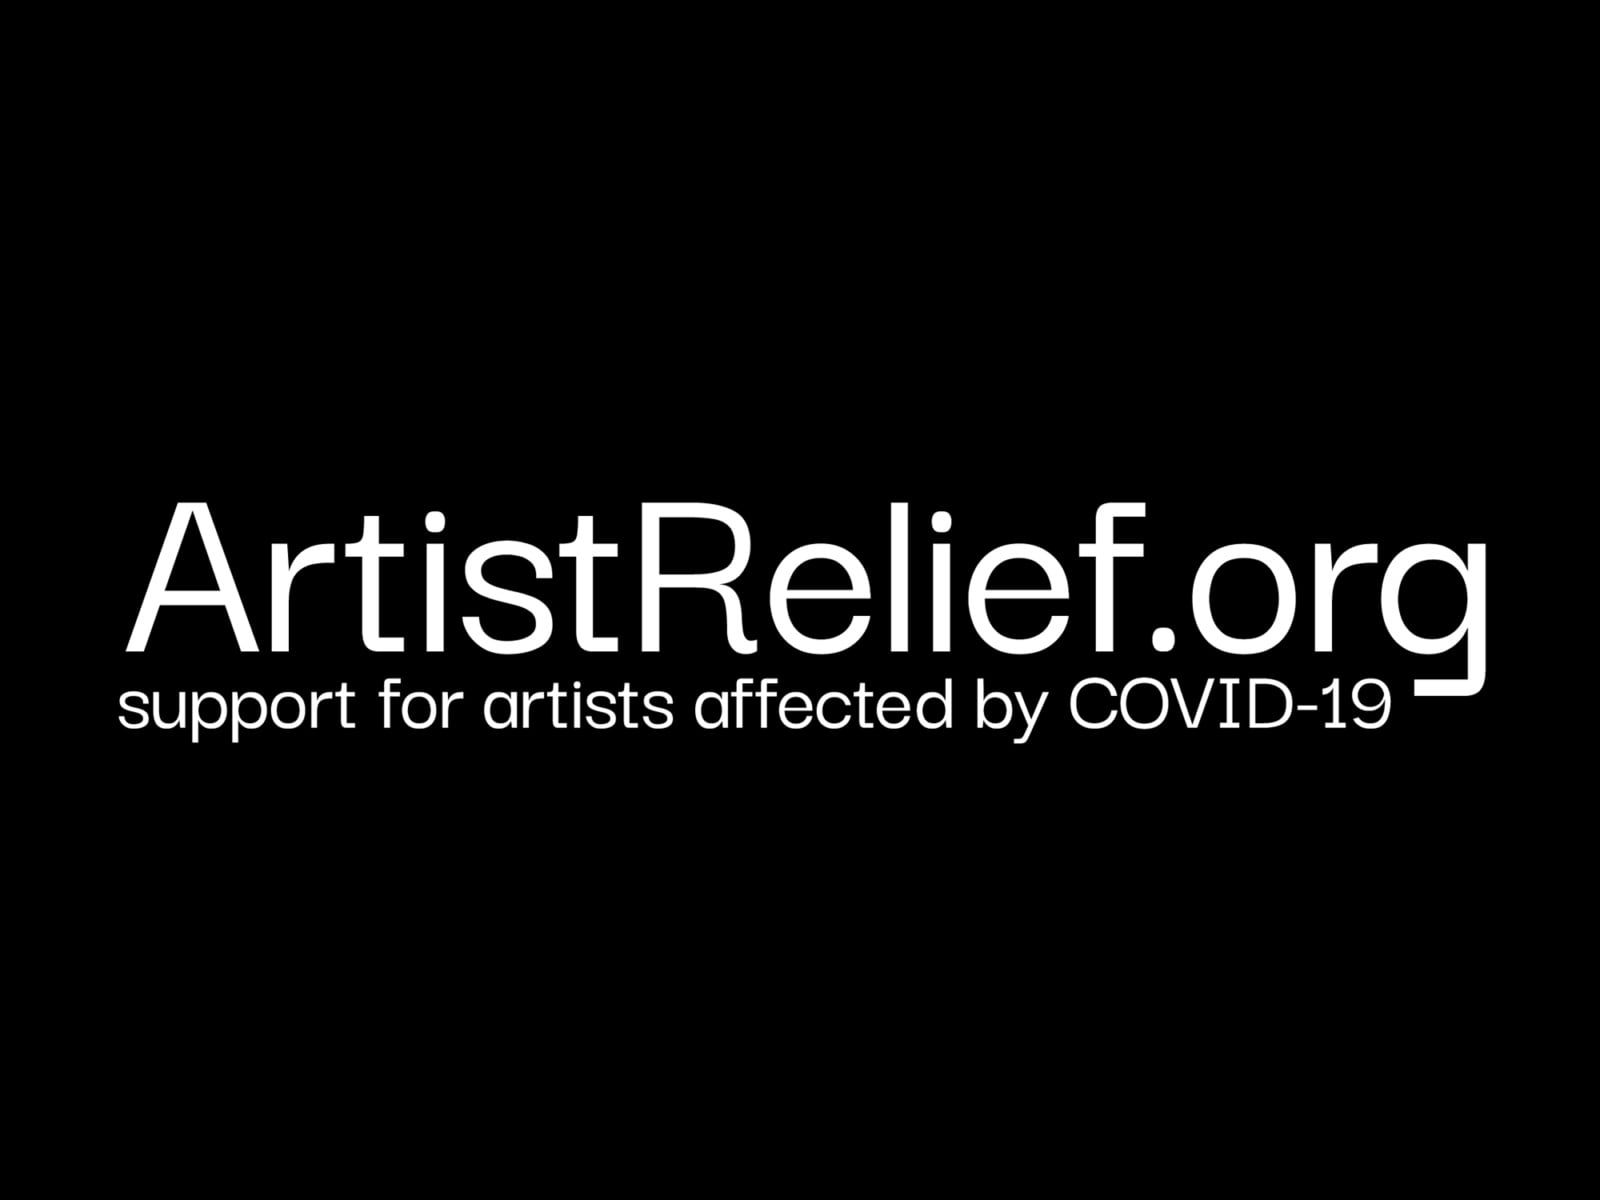 Artist Relief Artist Relief. To support artists during the COVID-19 crisis, a coalition of national arts grantmakers have come together to create an emergency initiative to offer financial and informational resources to artist across the United States.